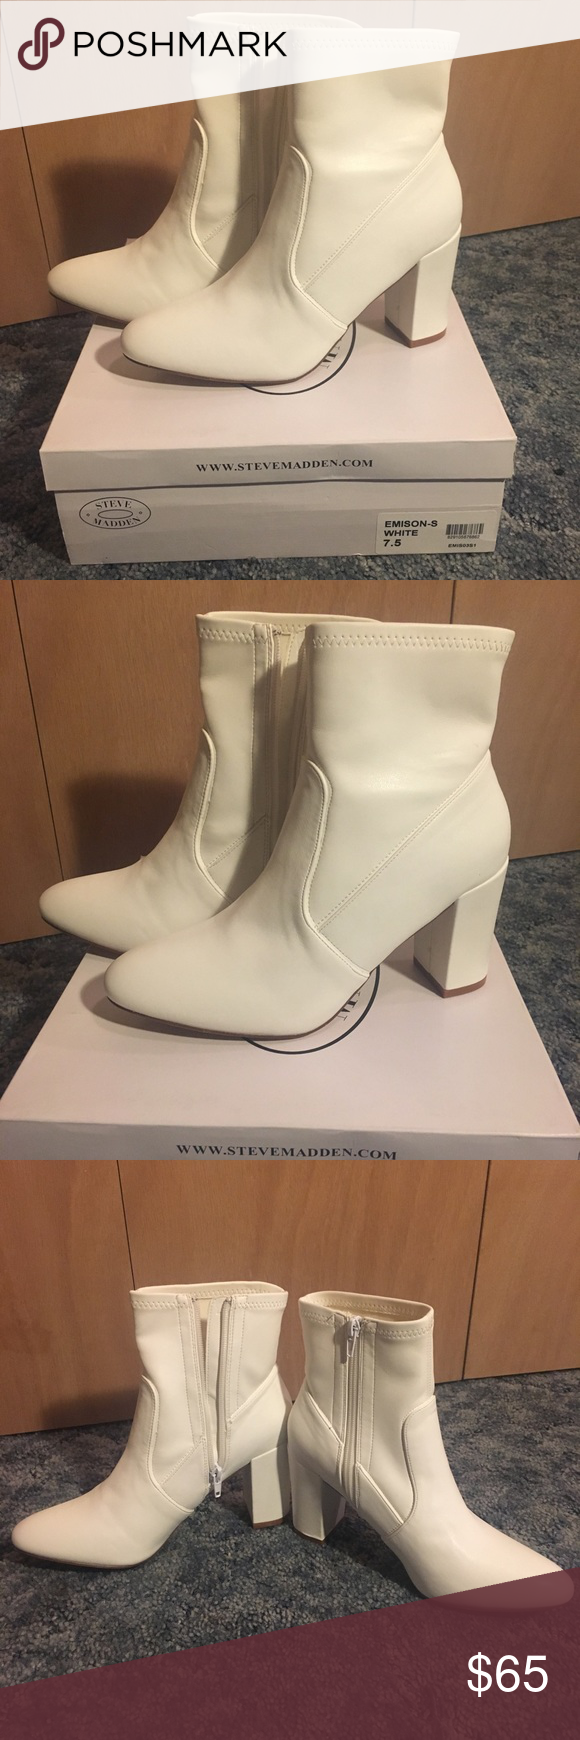 27425a722d7 NWT Steve Madden Emison-S White Boots Whether you re looking to give your